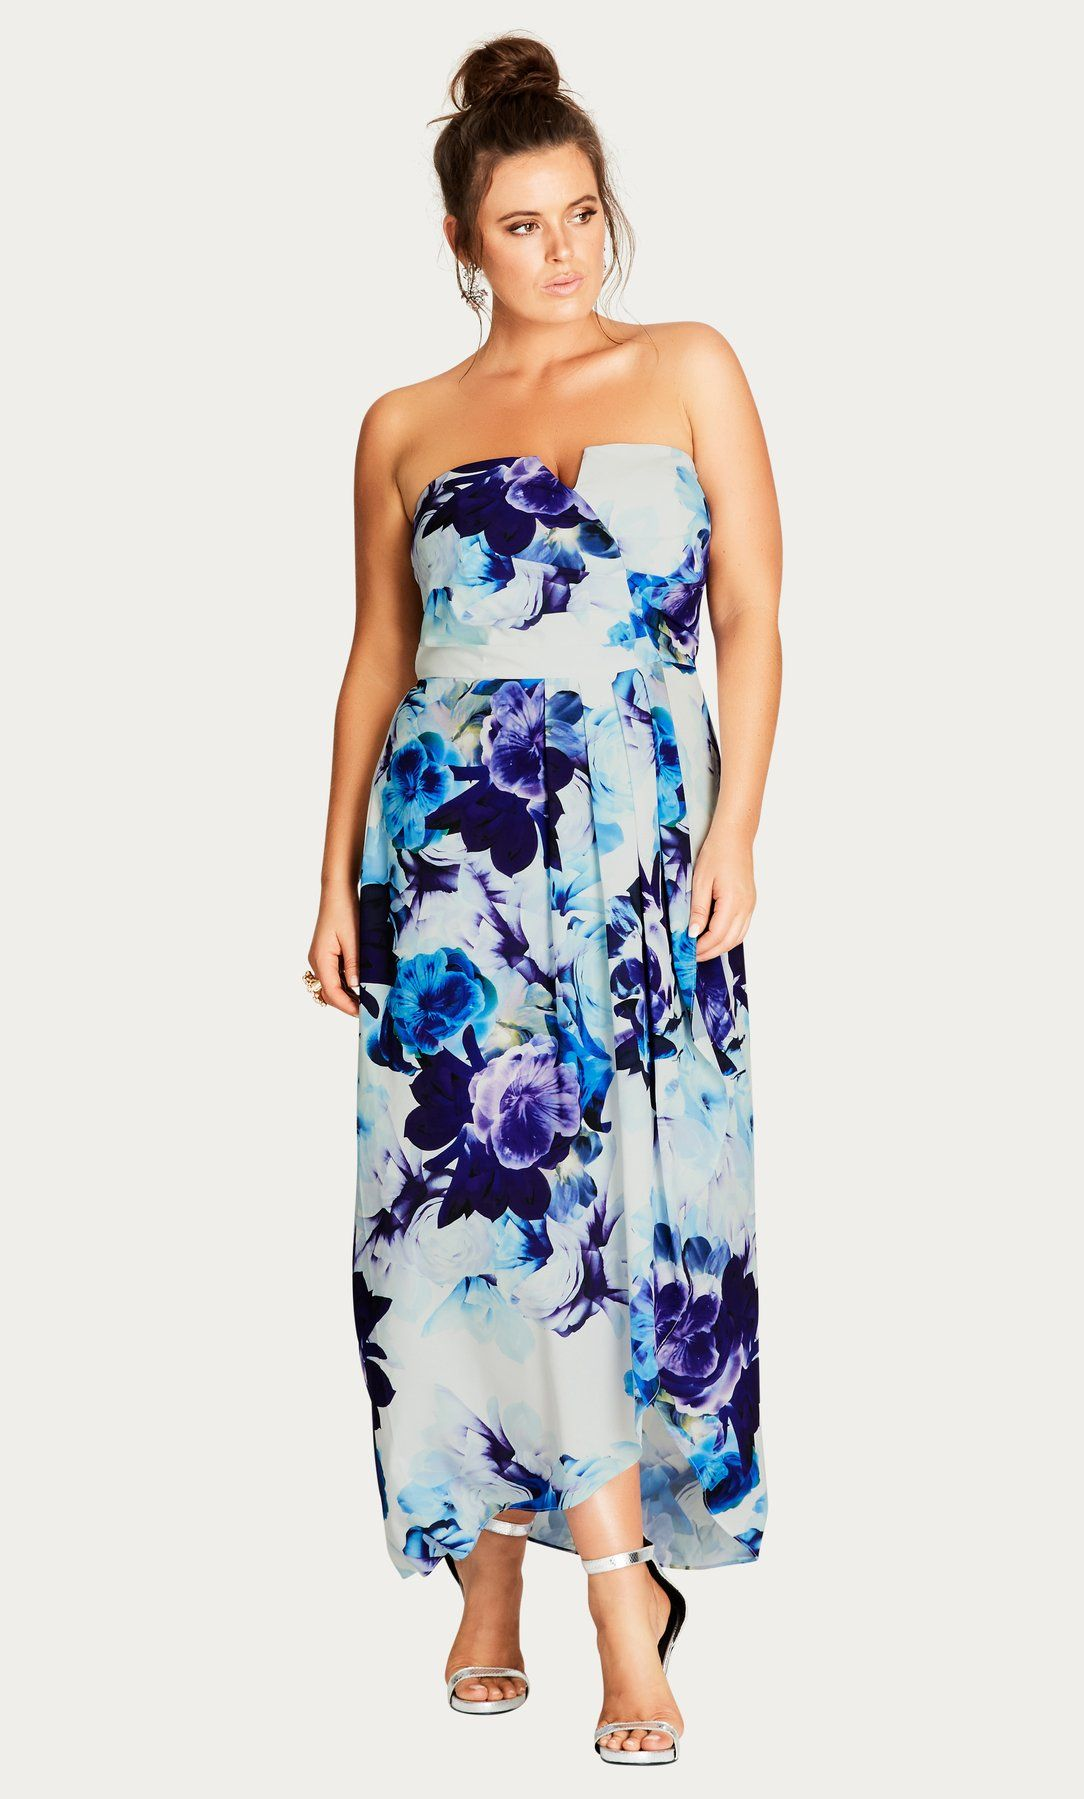 16 WEDDING GUESTS GOWNS FOR SPRING/SUMMERPLUSSIZE WOMEN